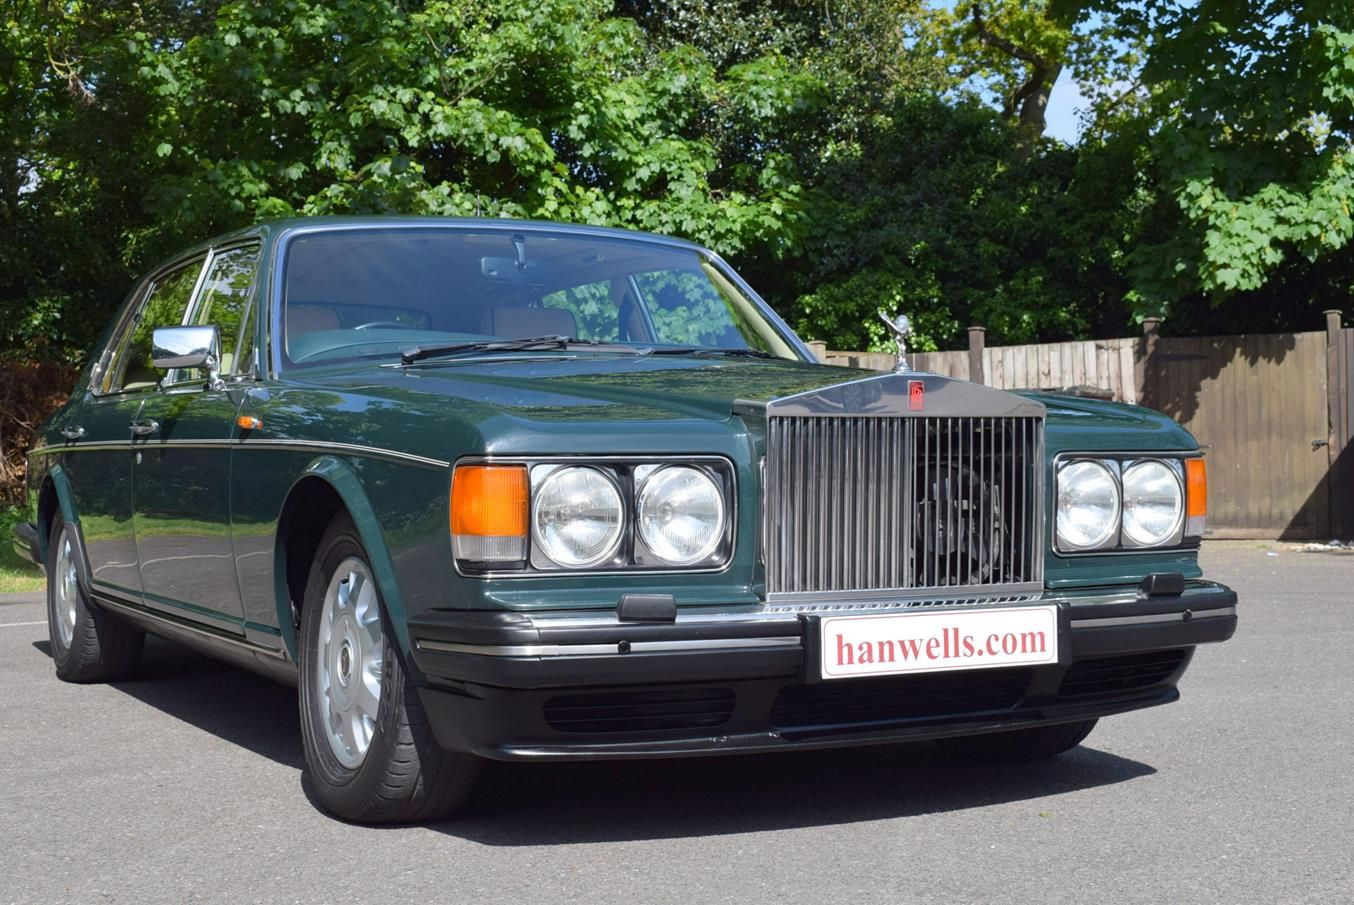 1995 m rolls royce flying spur no 44 of 50 rolls royce cars ever